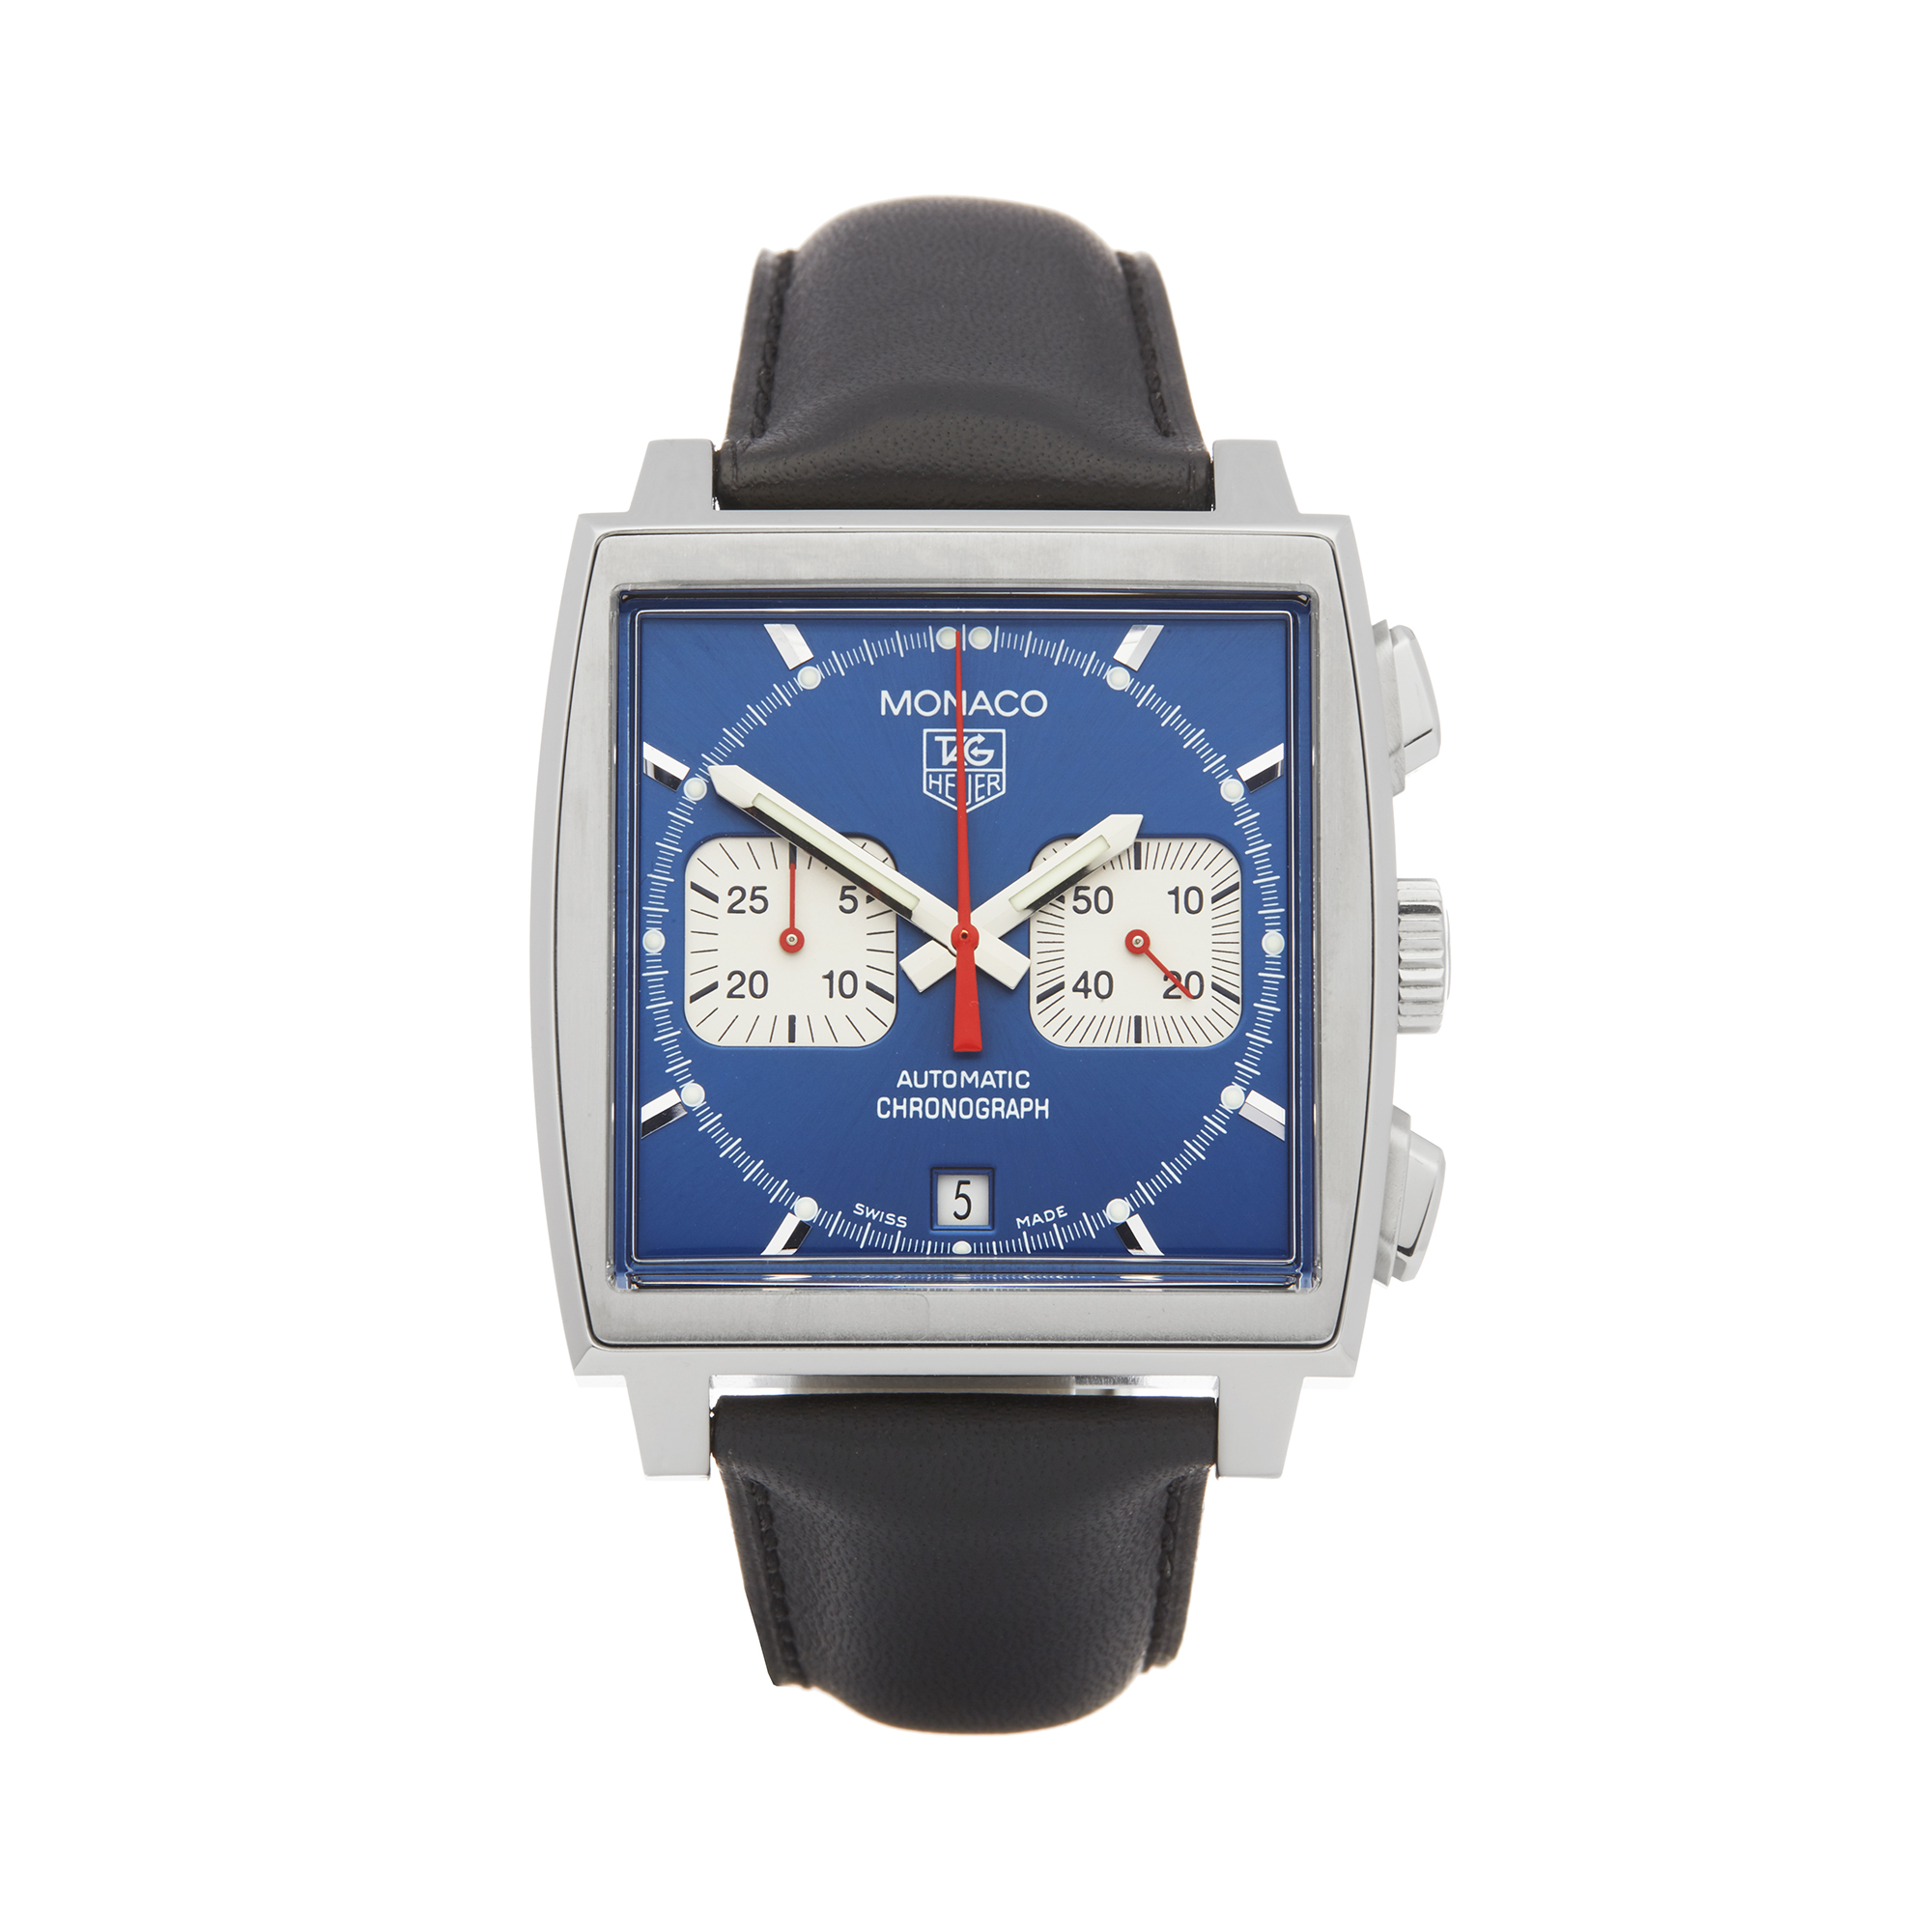 Tag Heuer Monaco CW2113-0 Men Stainless Steel Chronograph Watch - Image 8 of 8